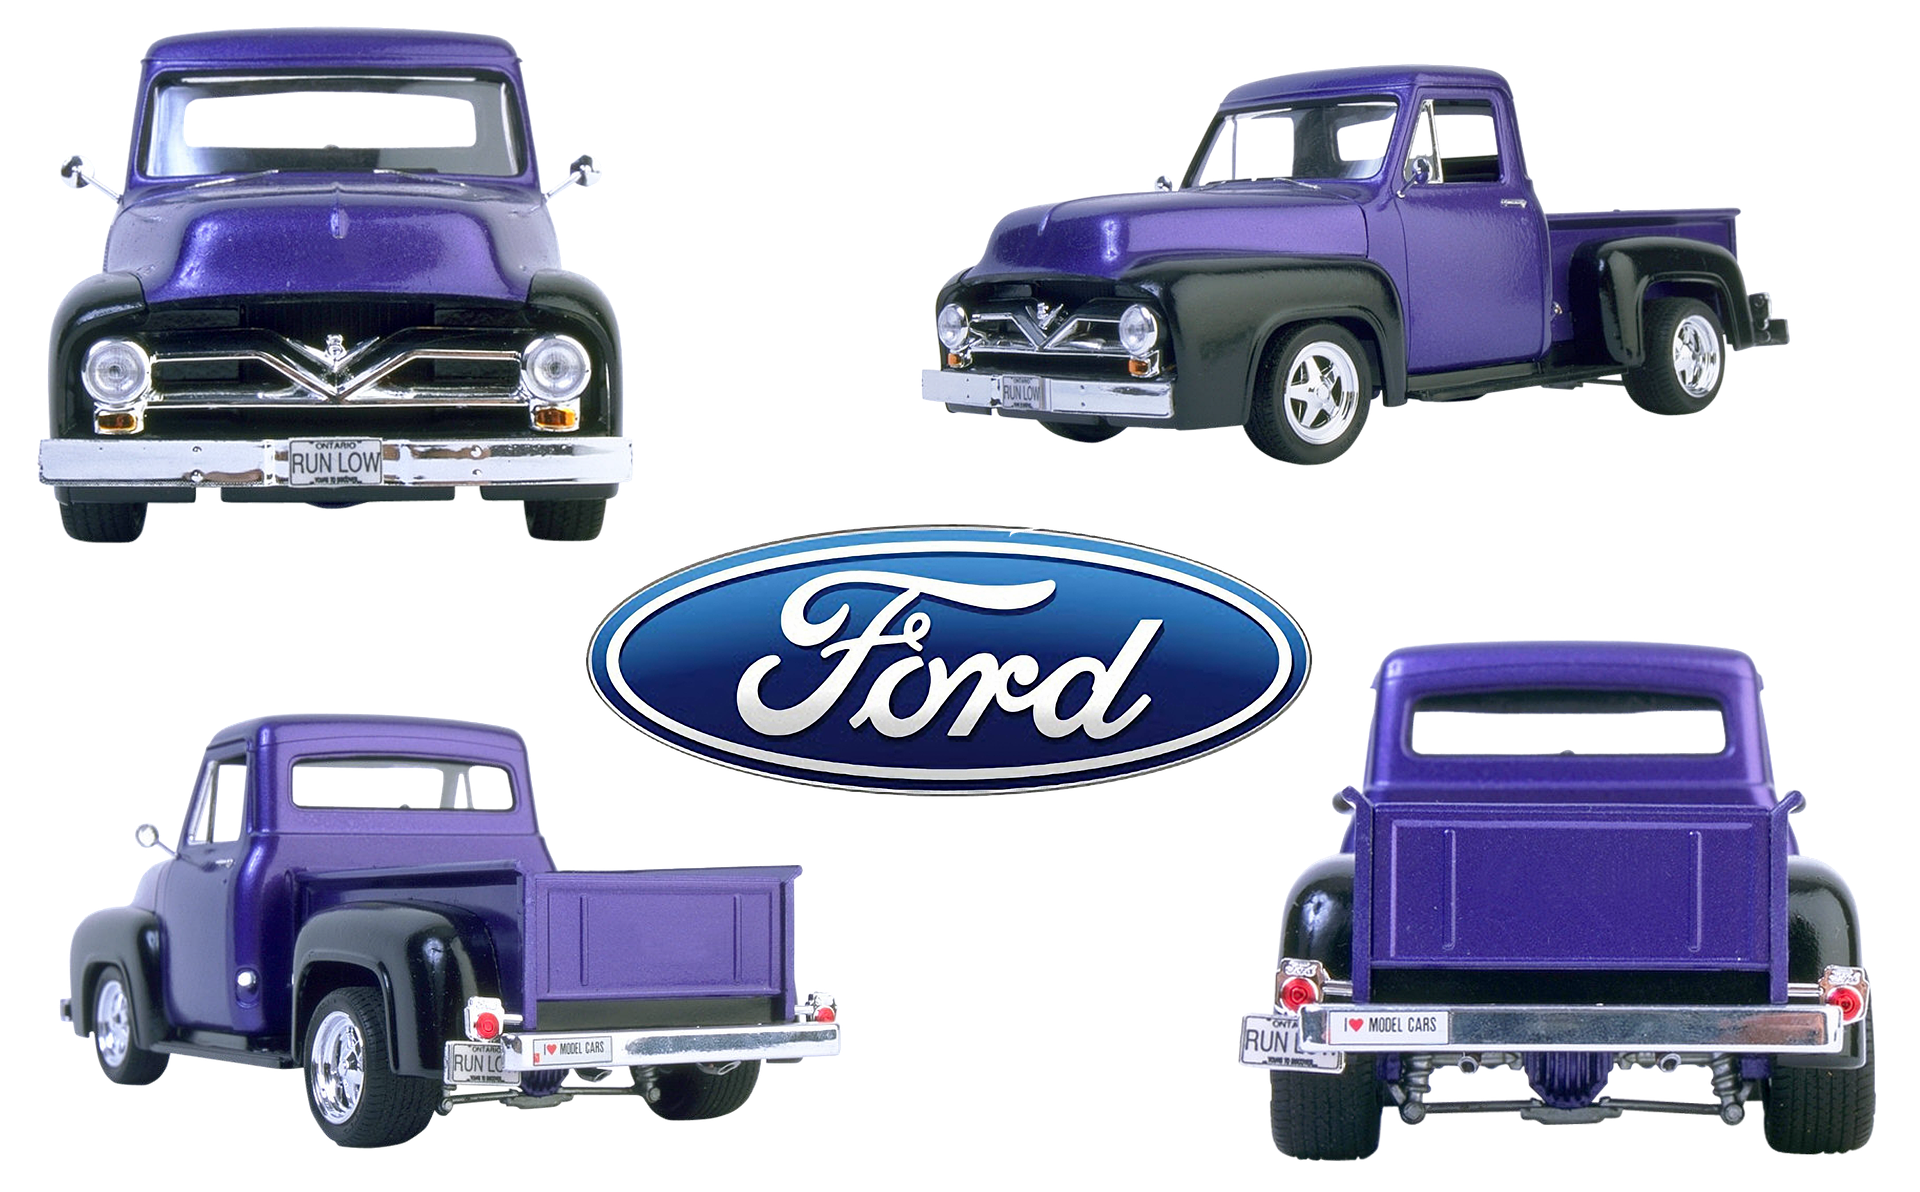 Ford Truck, Transport, Truck, Ride, Car, HQ Photo